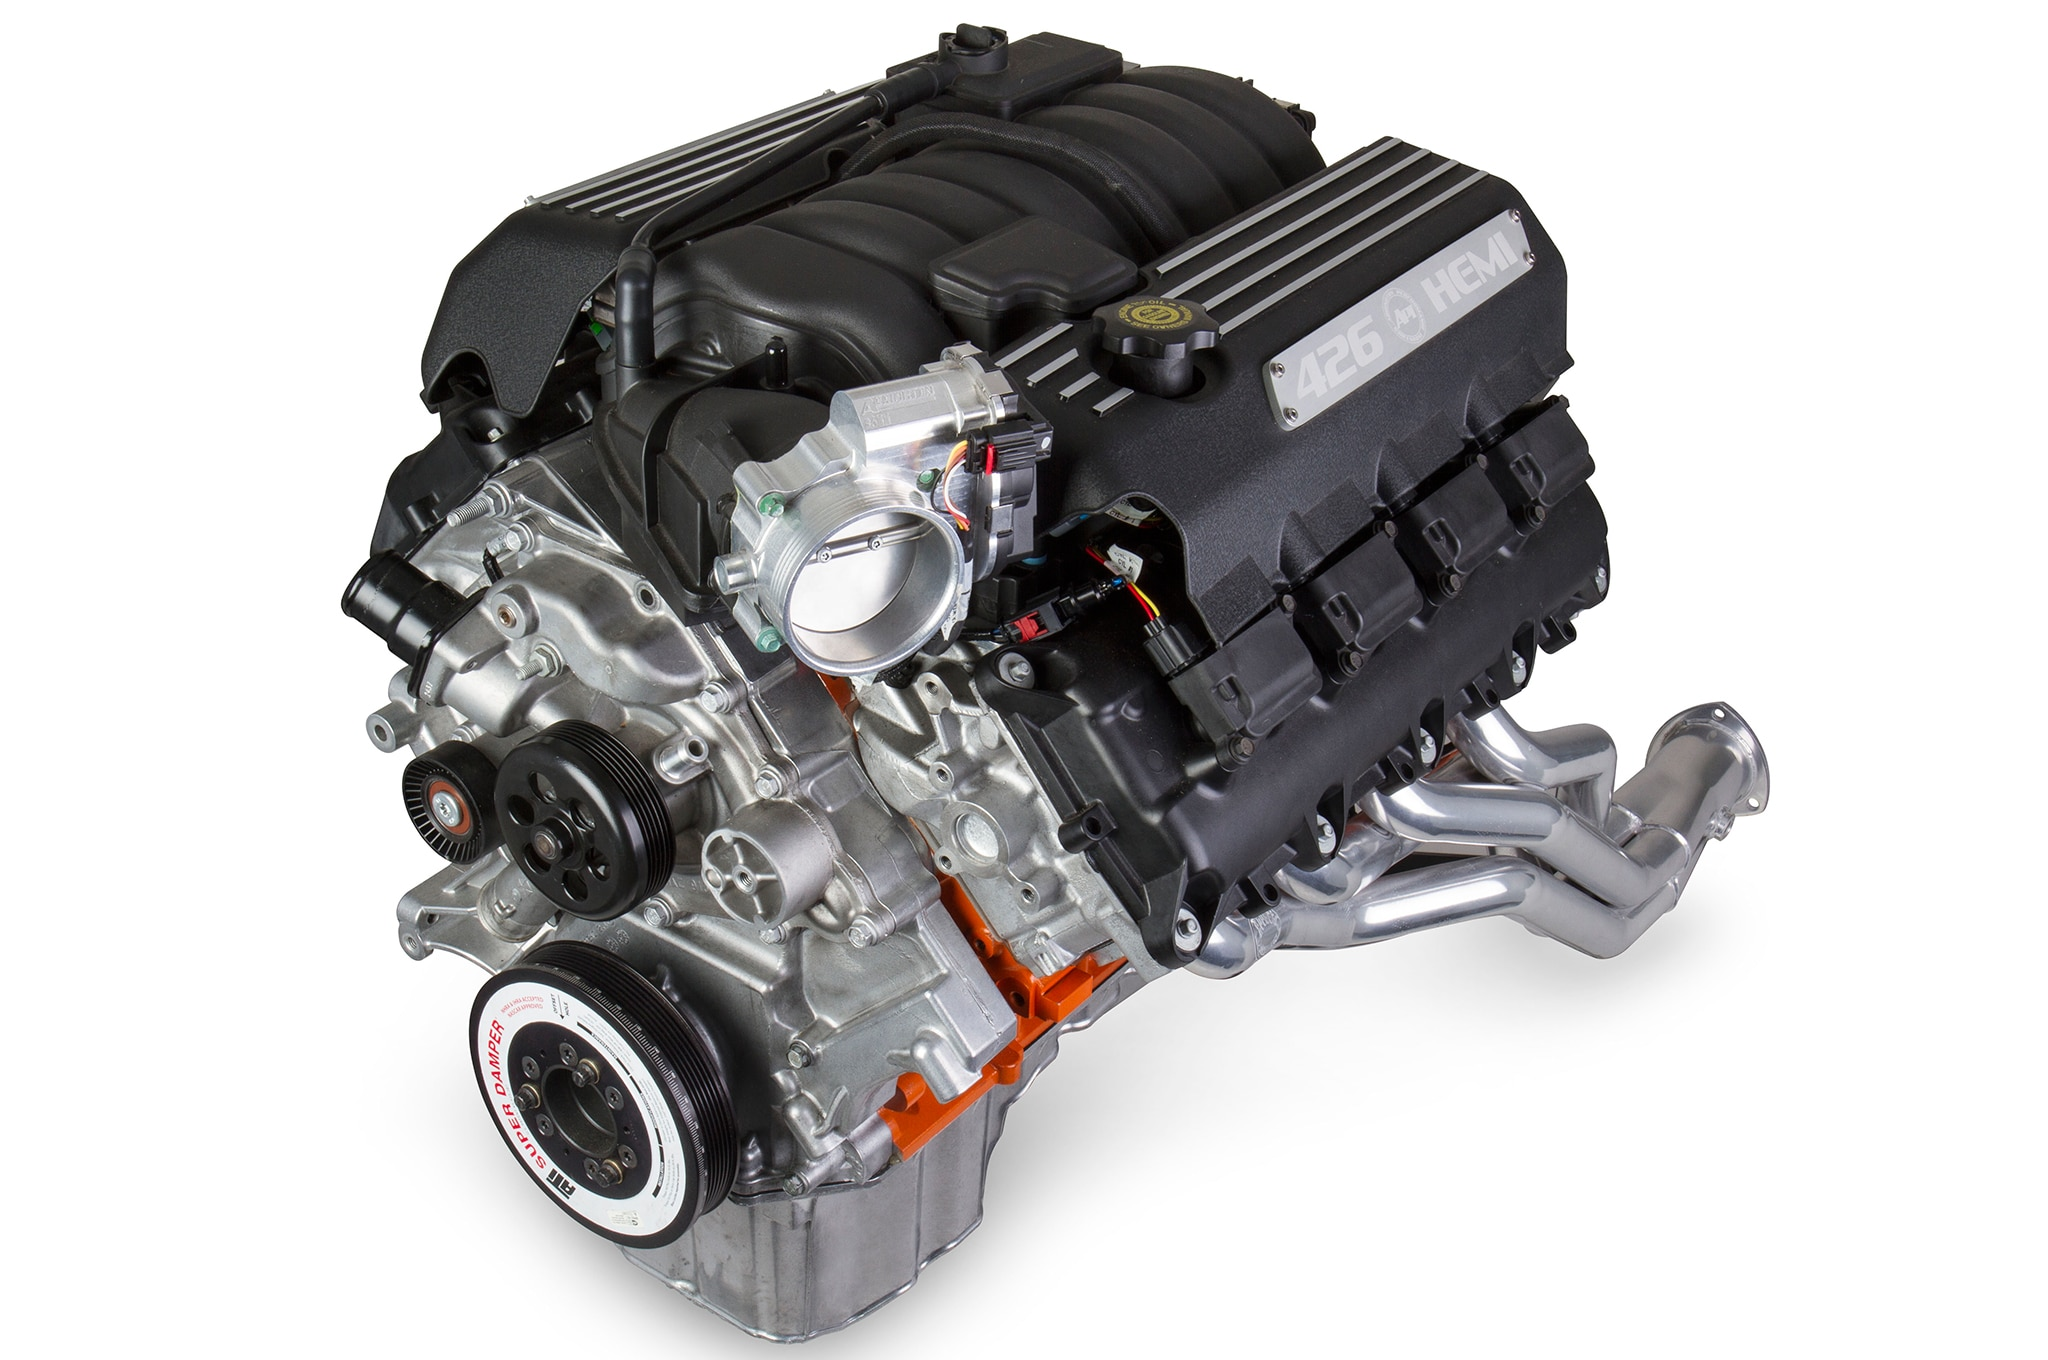 small resolution of hemi engine swaps made simple with new holley efi harness hot rodhemi engine swaps made